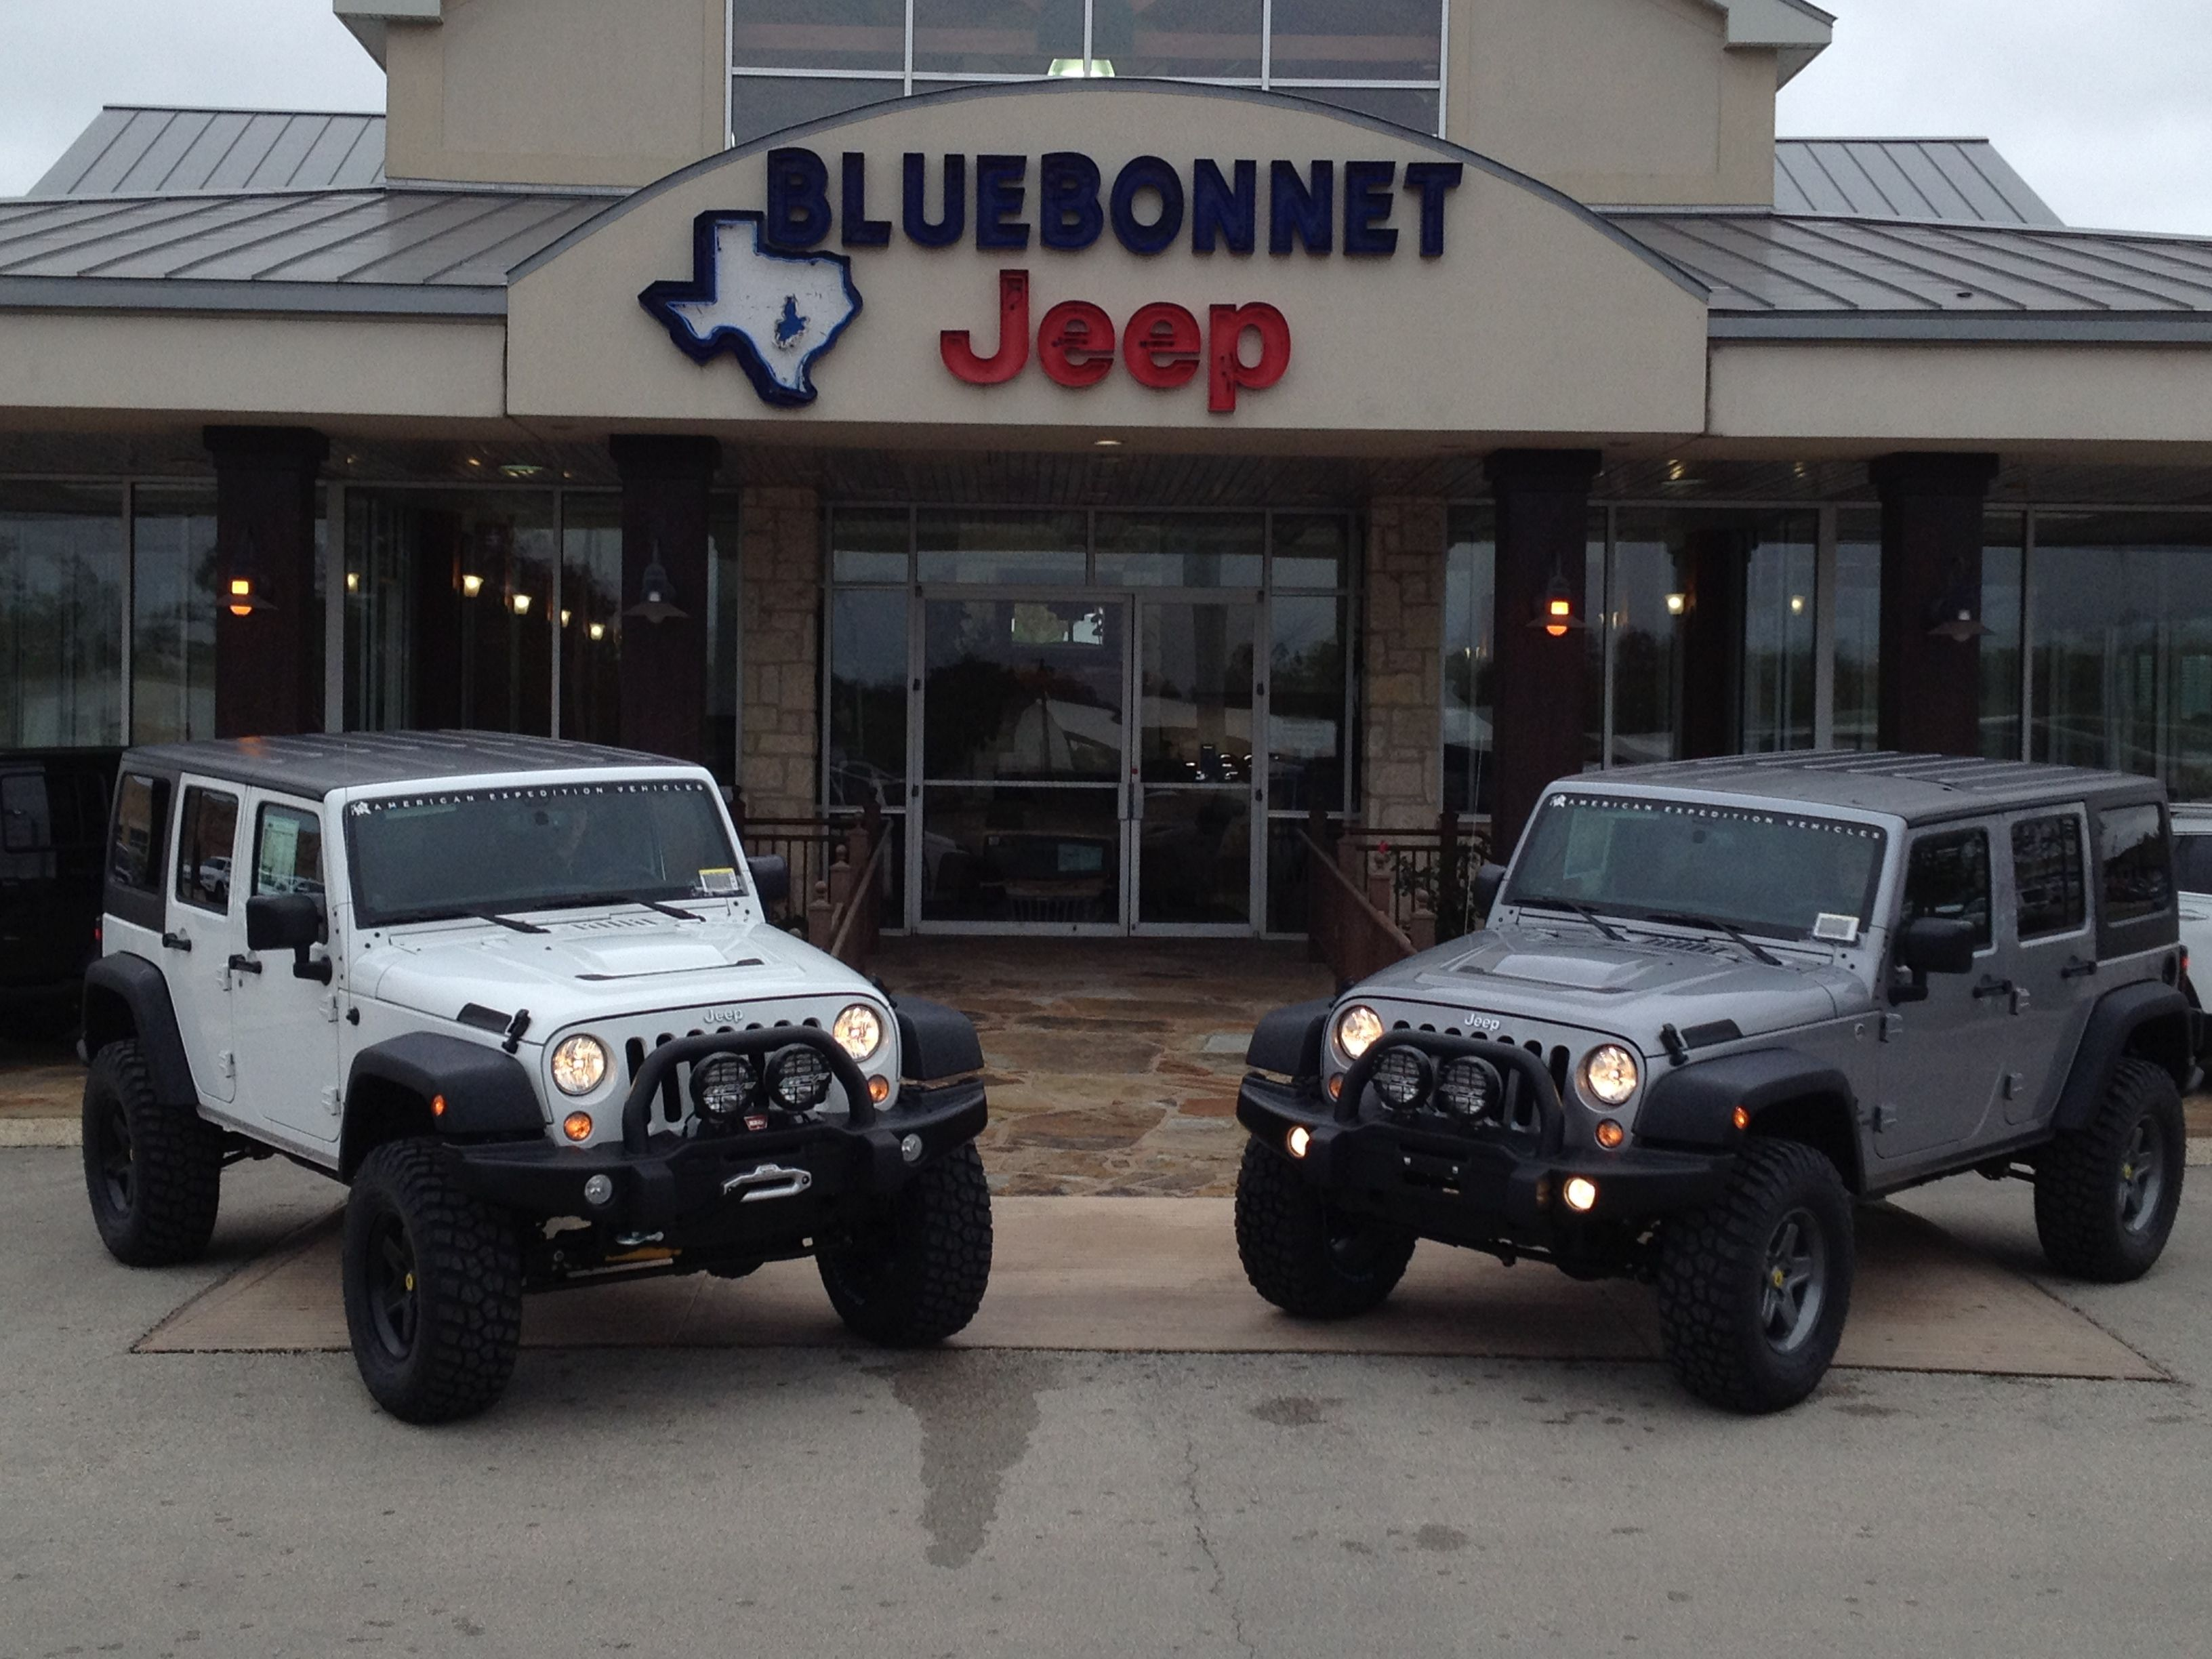 San Antonio Jeep Dealer Jpeg Dodge And Jeep Cars Images Jeep Jeep Dealer Jeep Car Images